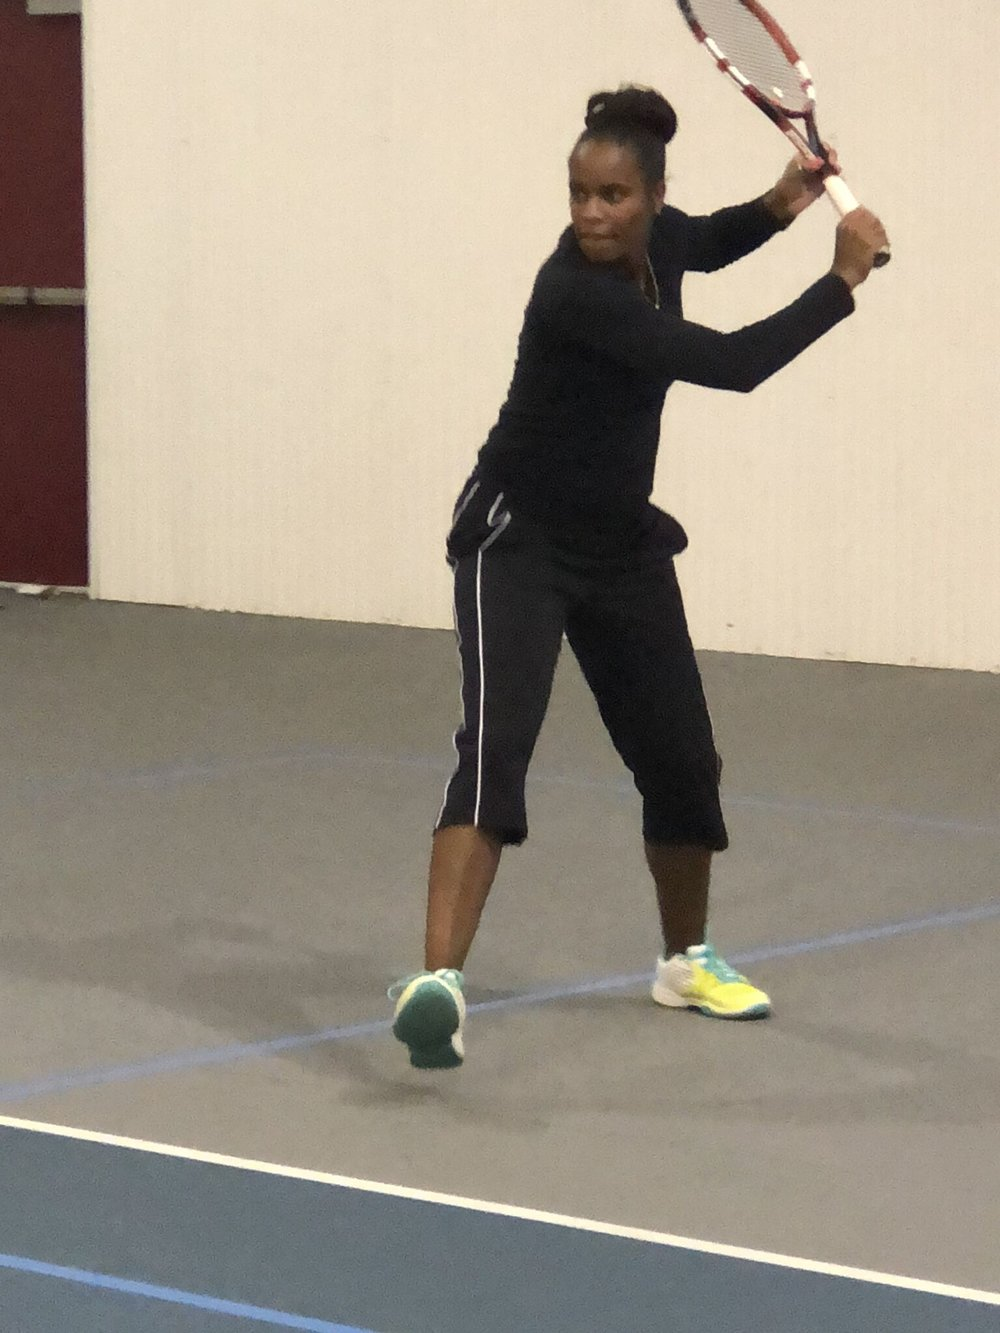 Shana Smith, Tennis Pro - Tennis Pro at The Rec Center at St. Matthew's. Prior to becoming a teaching Professional, Shana worked for Legacy (formally AAYTE) from 2003-2007 coordinating with the National Junior Tennis and Learning in Philadelphia. She played varsity tennis for Williamstown High School (#1 all four years) 1992-1996. Shana was a Division 1 College Tennis Player 1996-2000. Shana is a Member of (USTA) Unitied States Tennis Association and PTR Certifie.